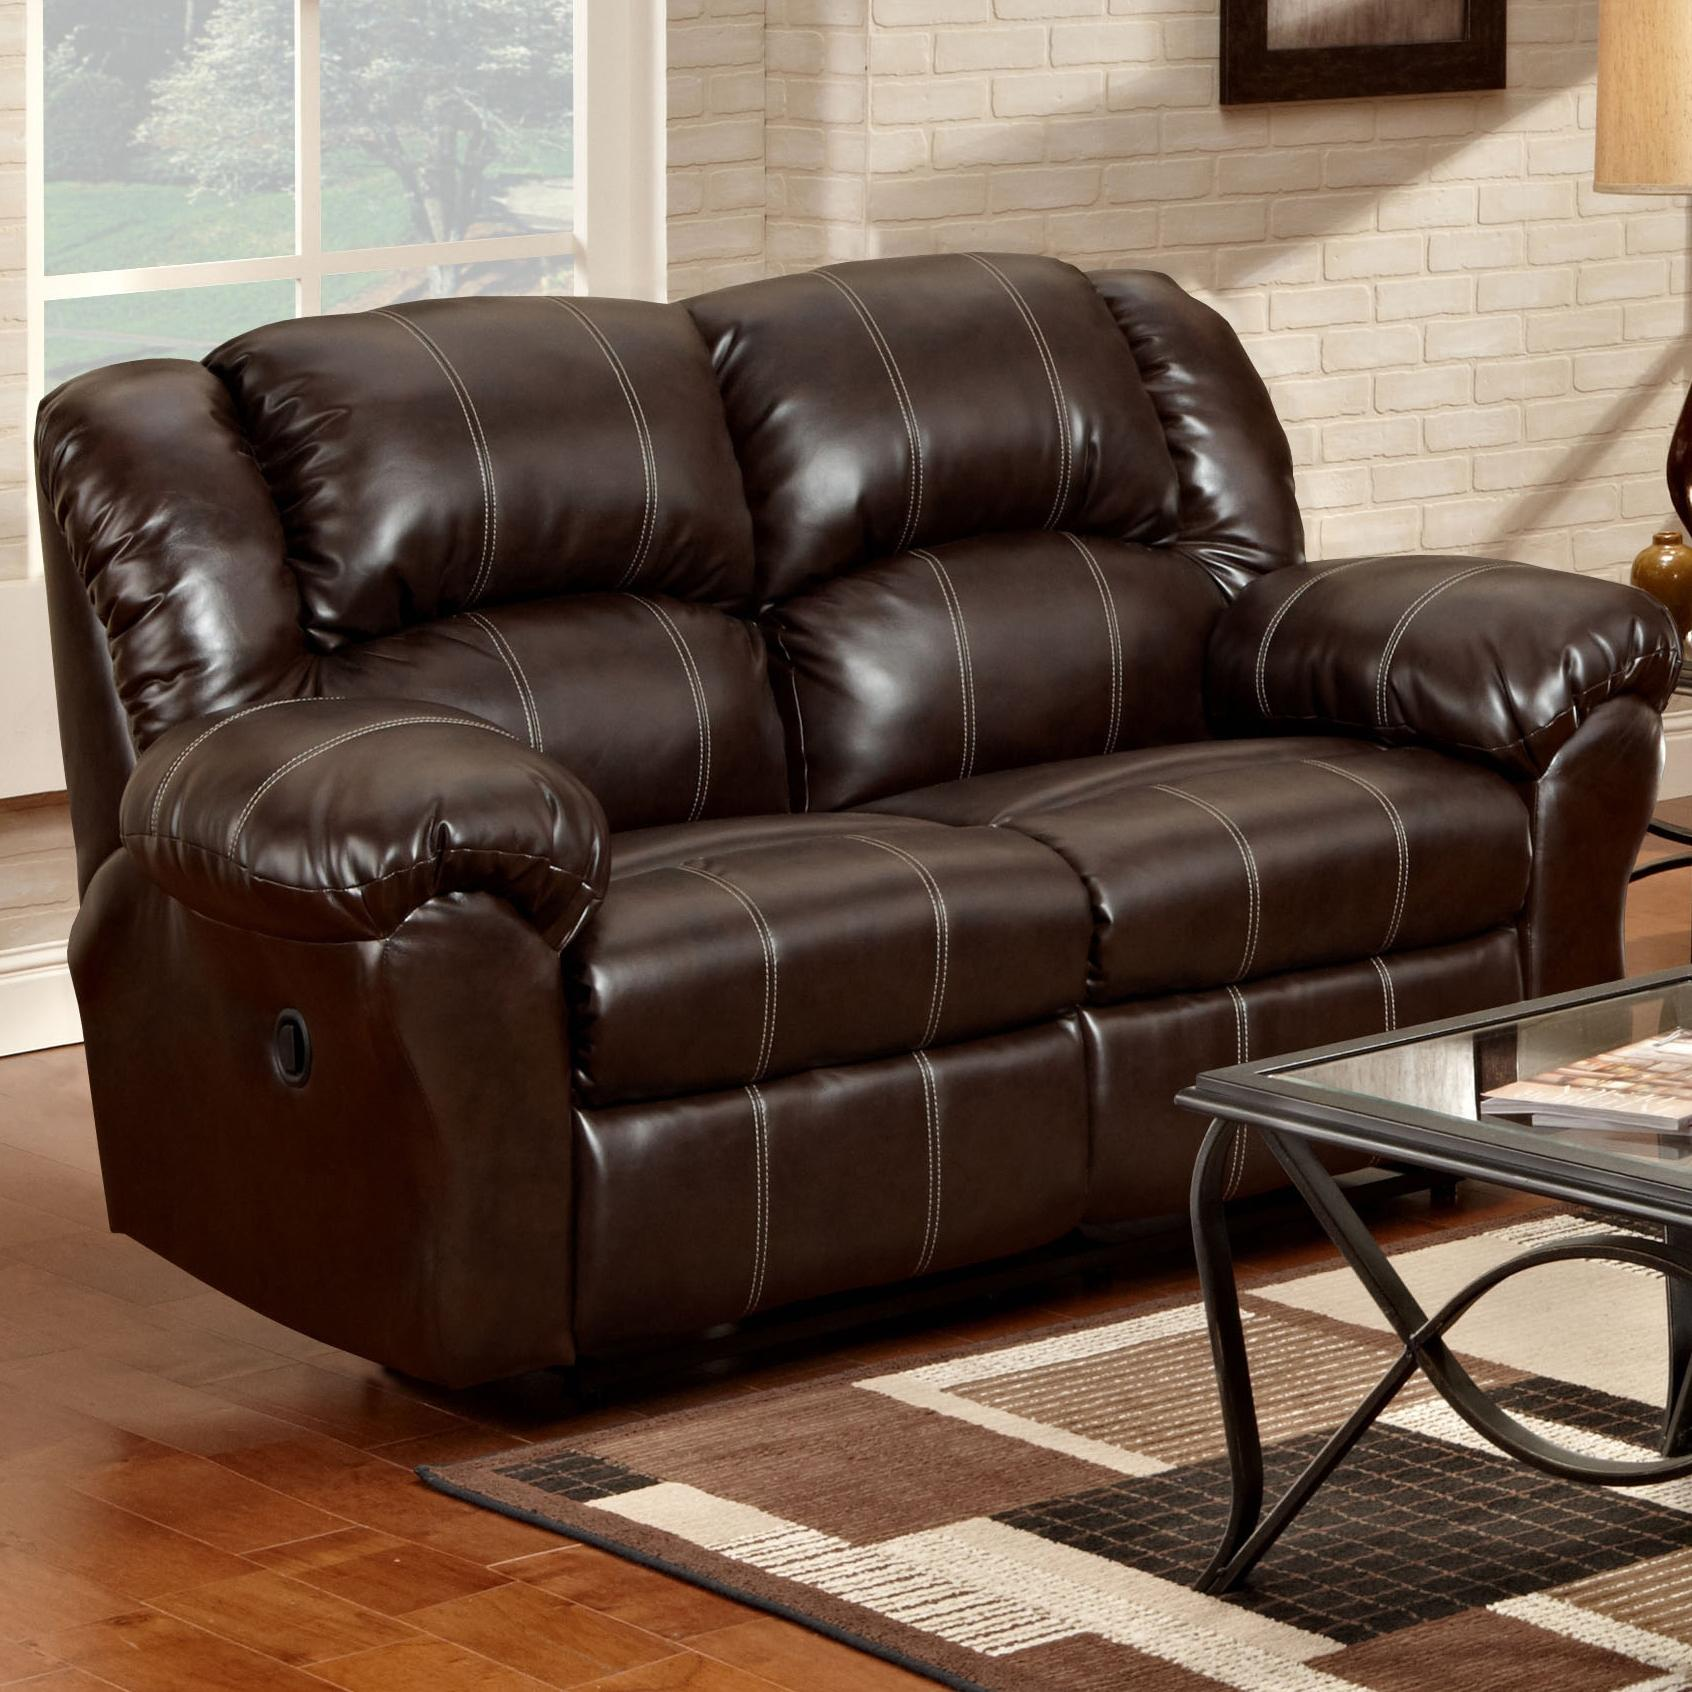 Reclining loveseat with pillow arms 1000 by affordable for Affordable furniture number